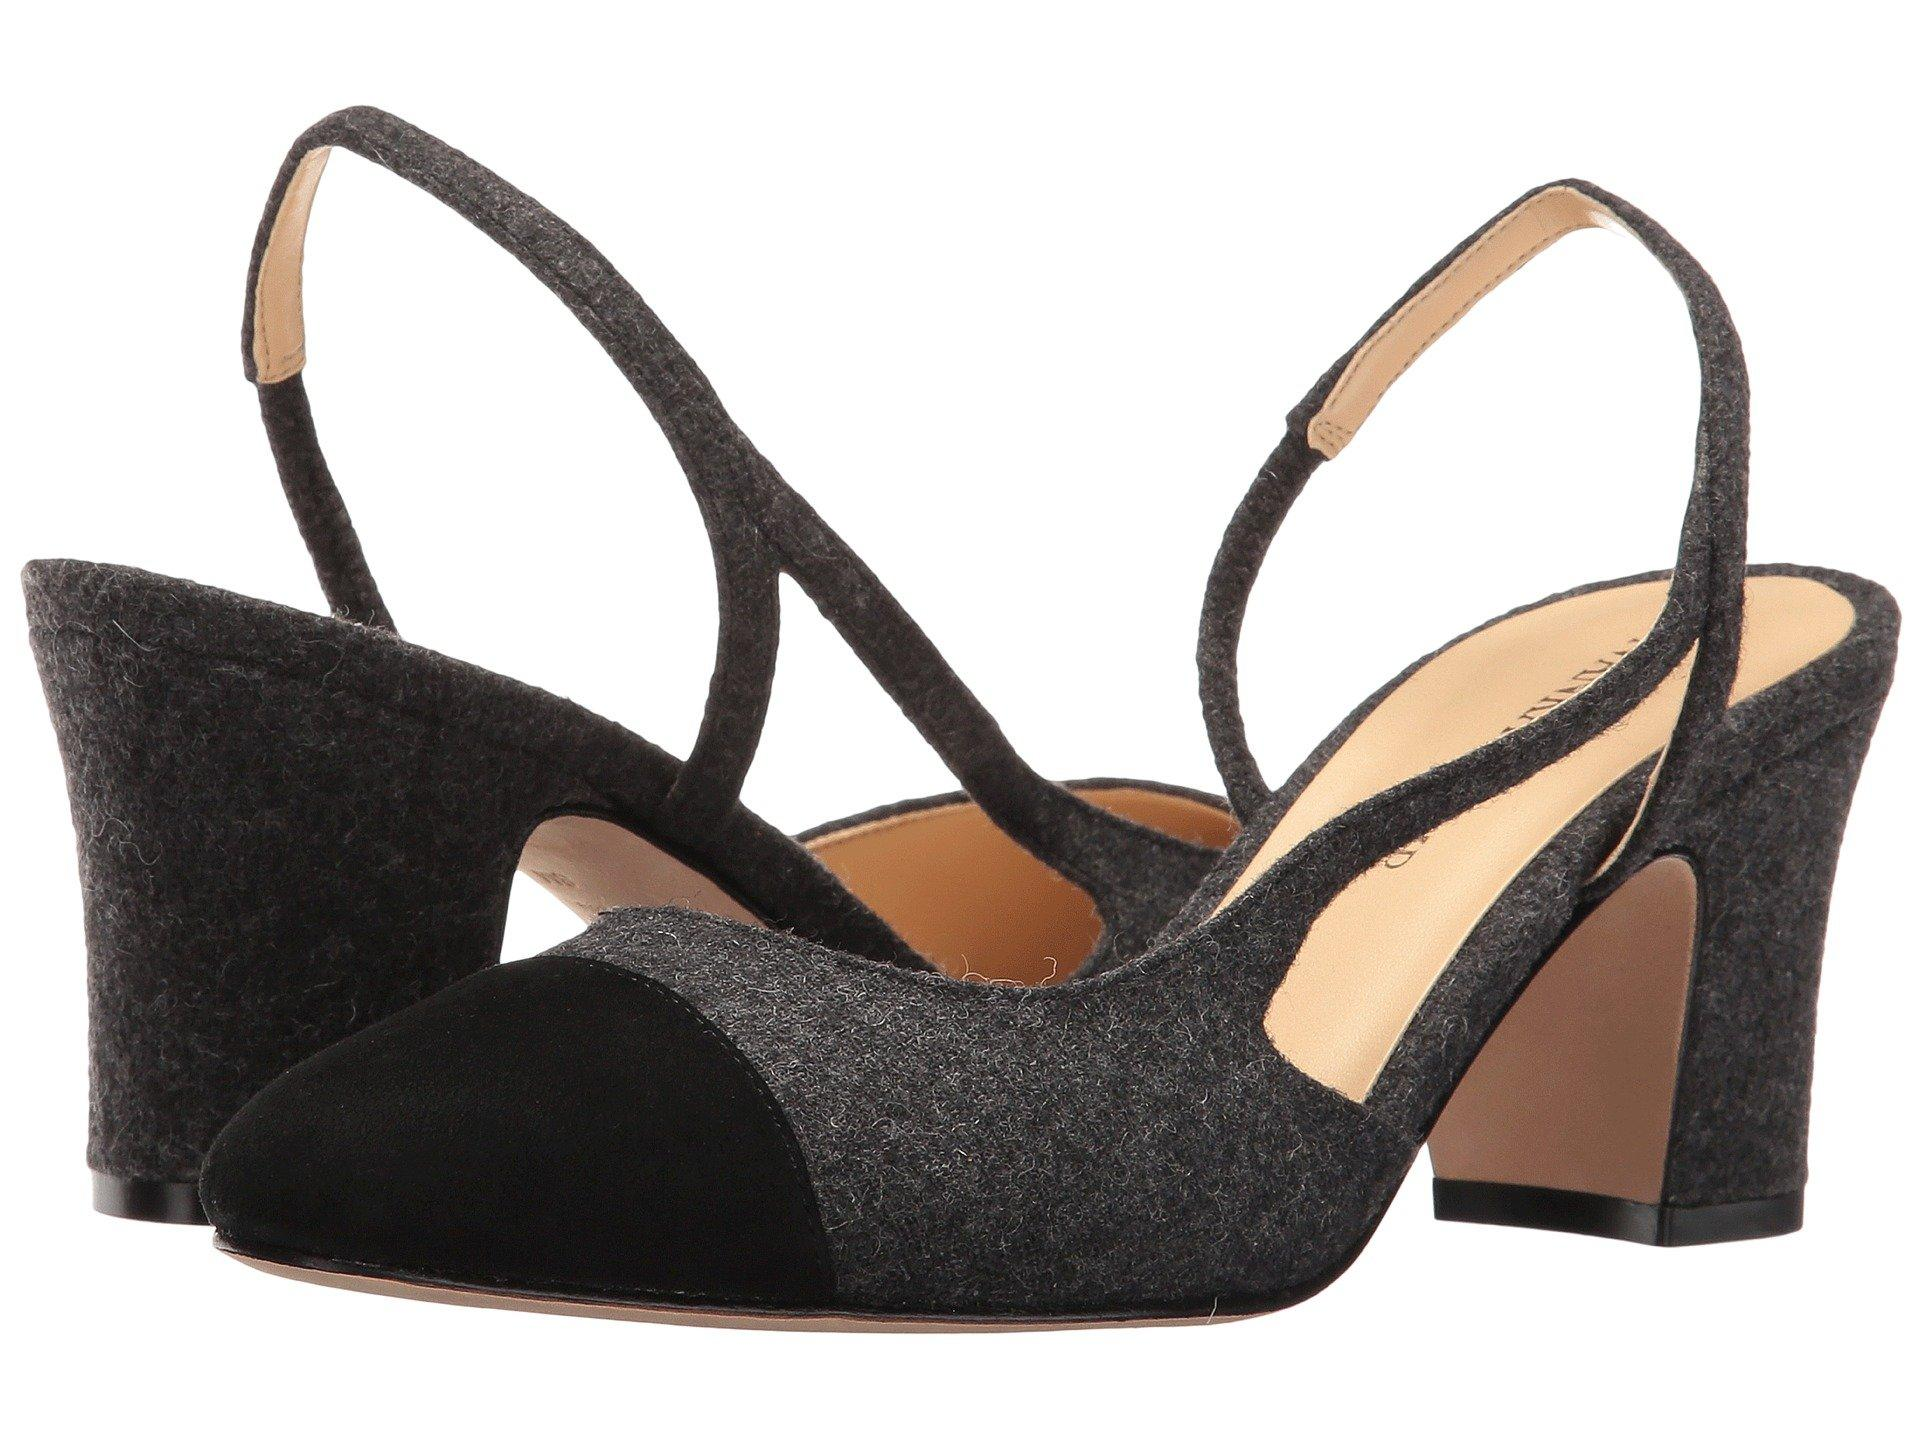 778e0f0de Ivanka Trump Liah Slingback Pumps In Dark Grey/Black | ModeSens